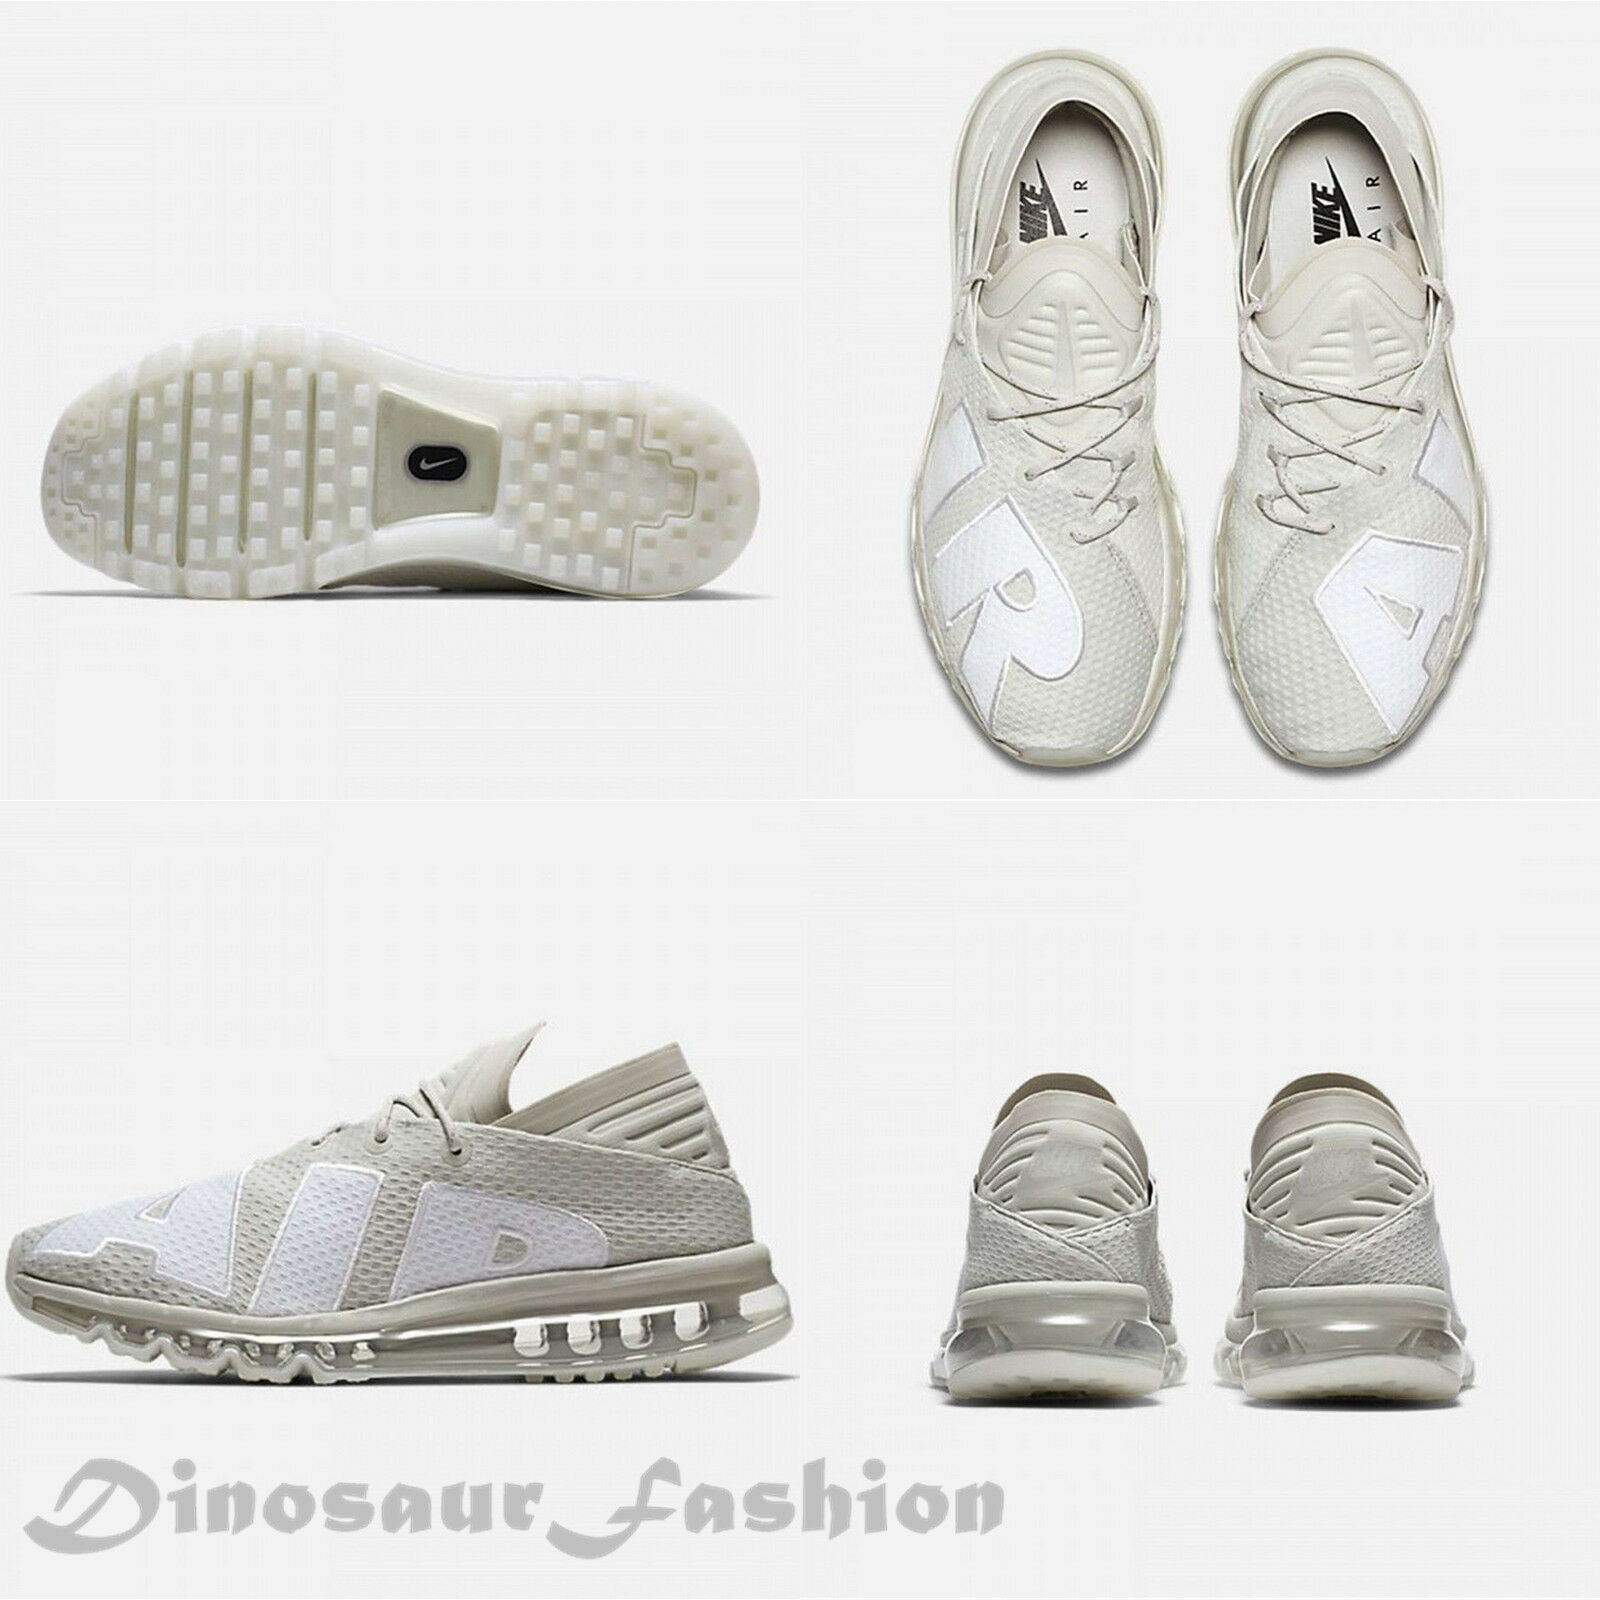 Primary image for NIKE AIR MAX FLAIR <942236 - 005> Light Bone,Men's Sportwear Running Shoes.NWB